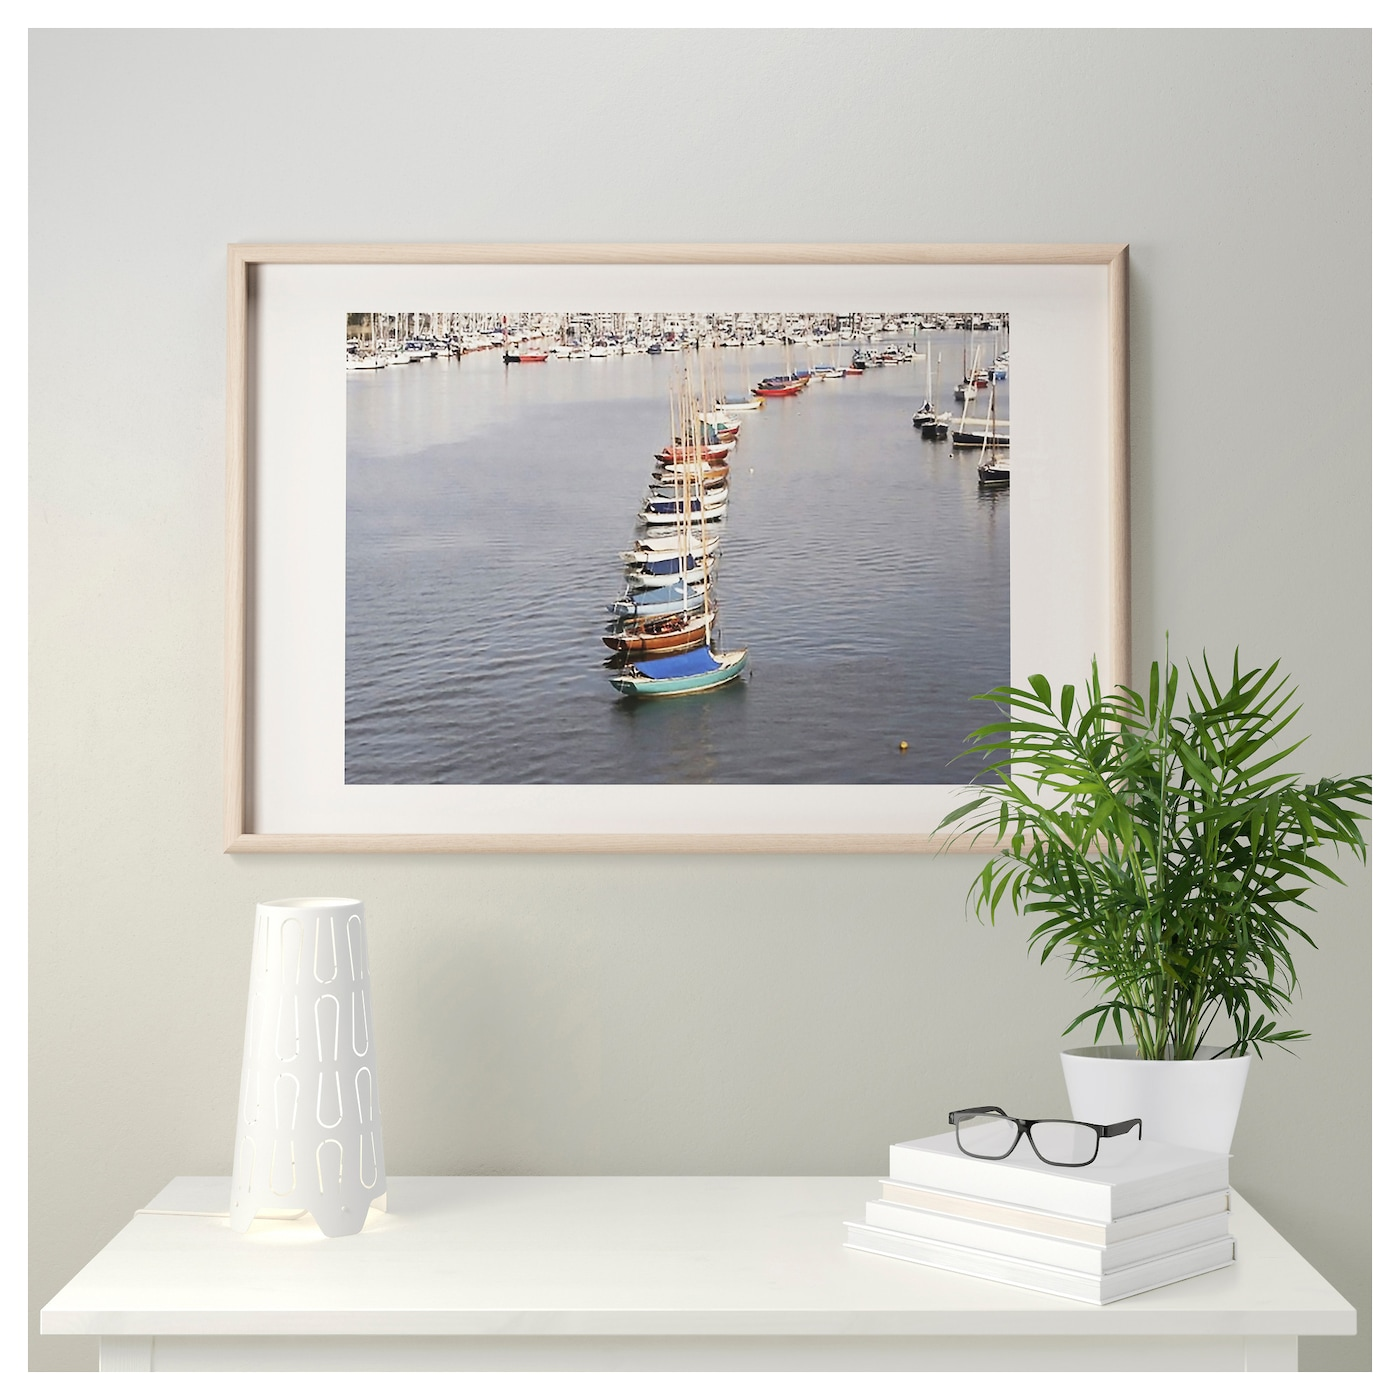 IKEA MOSSEBO frame Can be hung horizontally or vertically to fit in the space available.